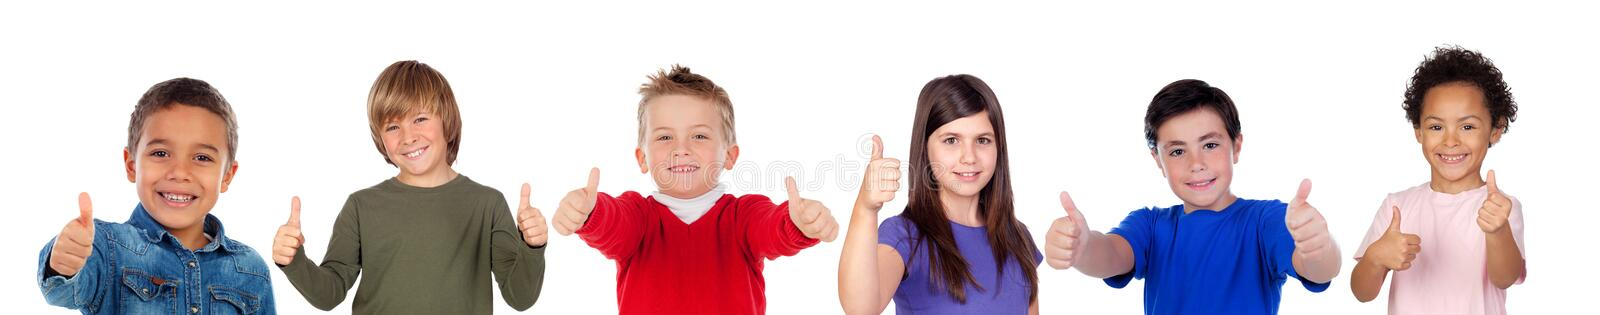 Children looking at camera stock photo